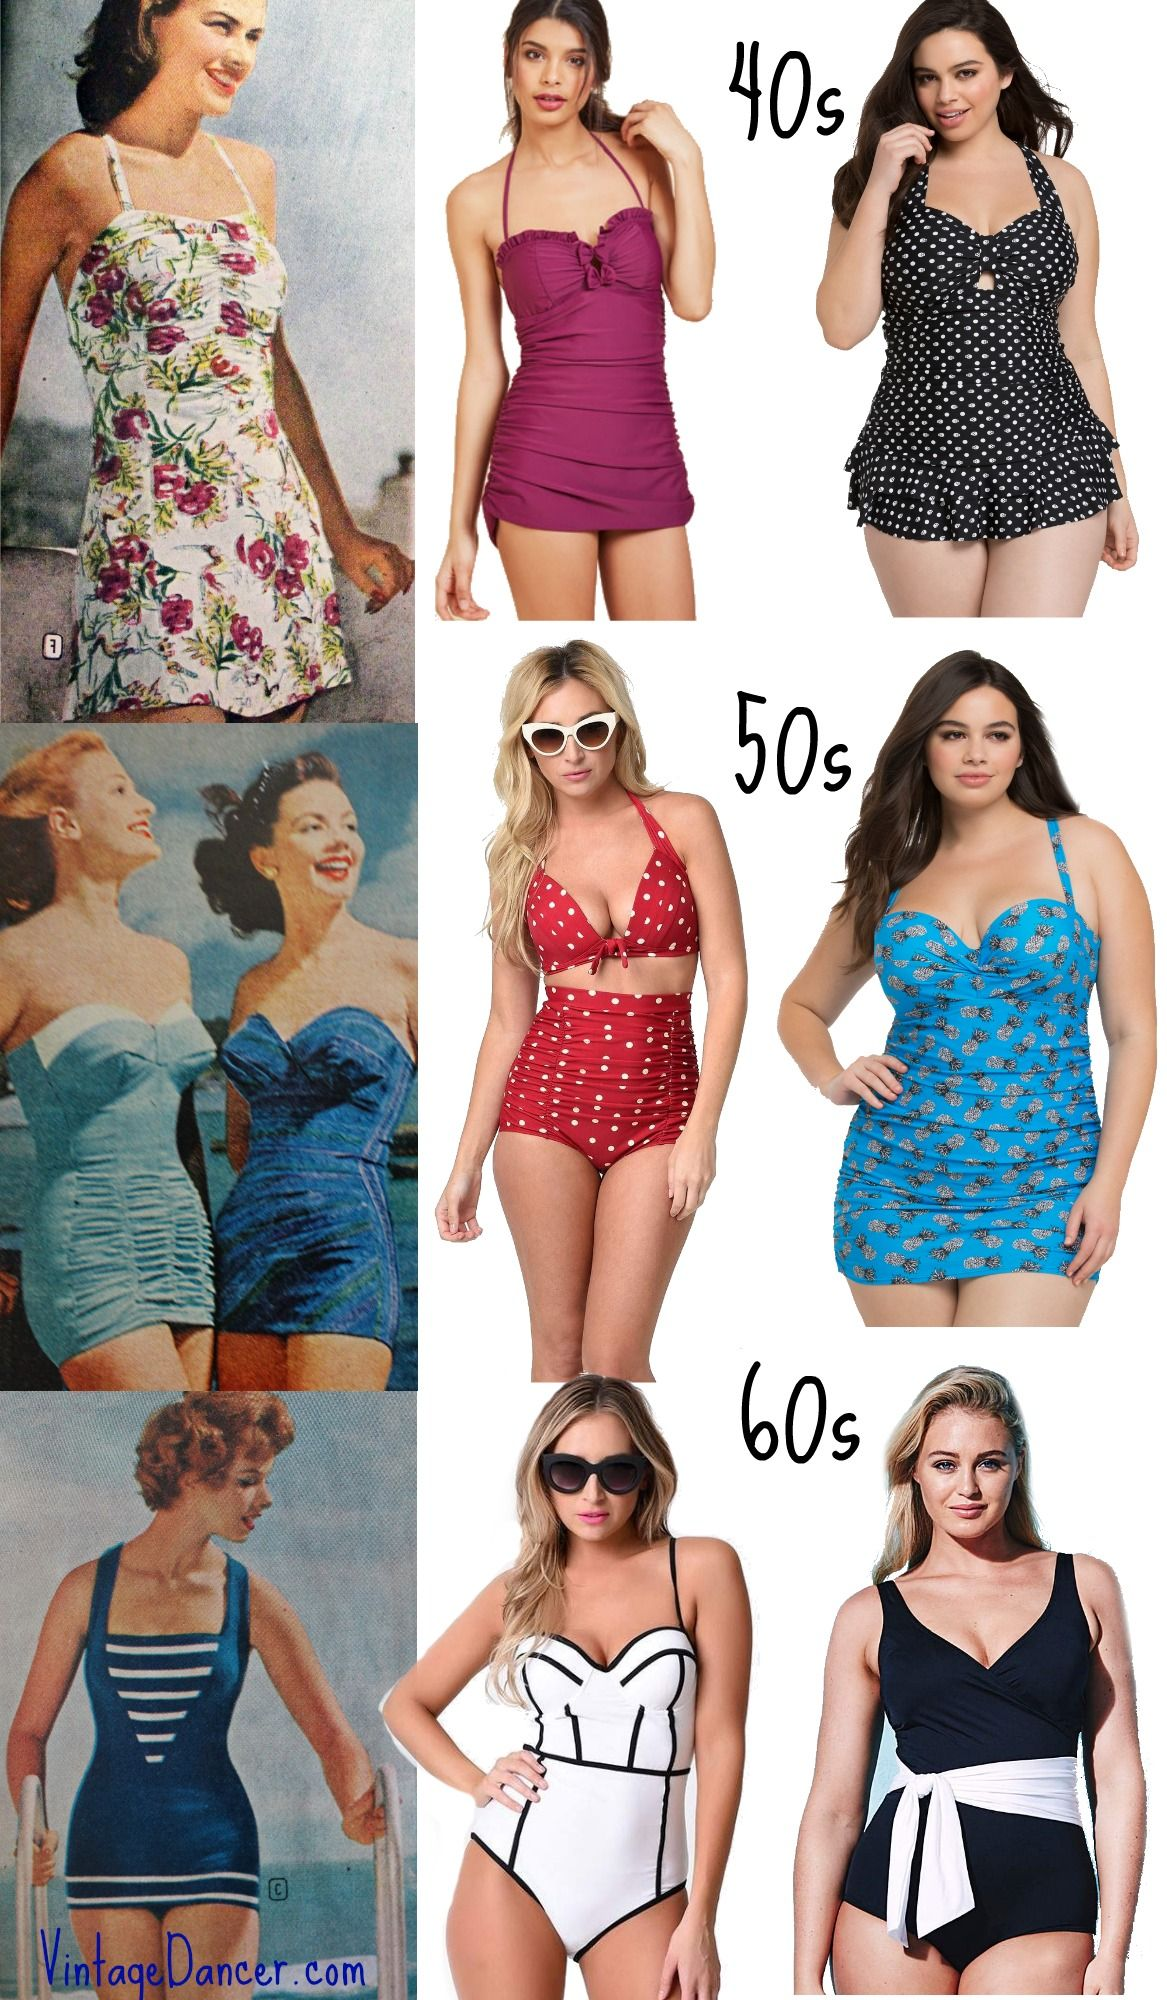 aa32769318d Vintage Style Swimsuits, Vintage Bathing Suits, 1940s, 1950s, 1960s styles  at VintageDancer.com